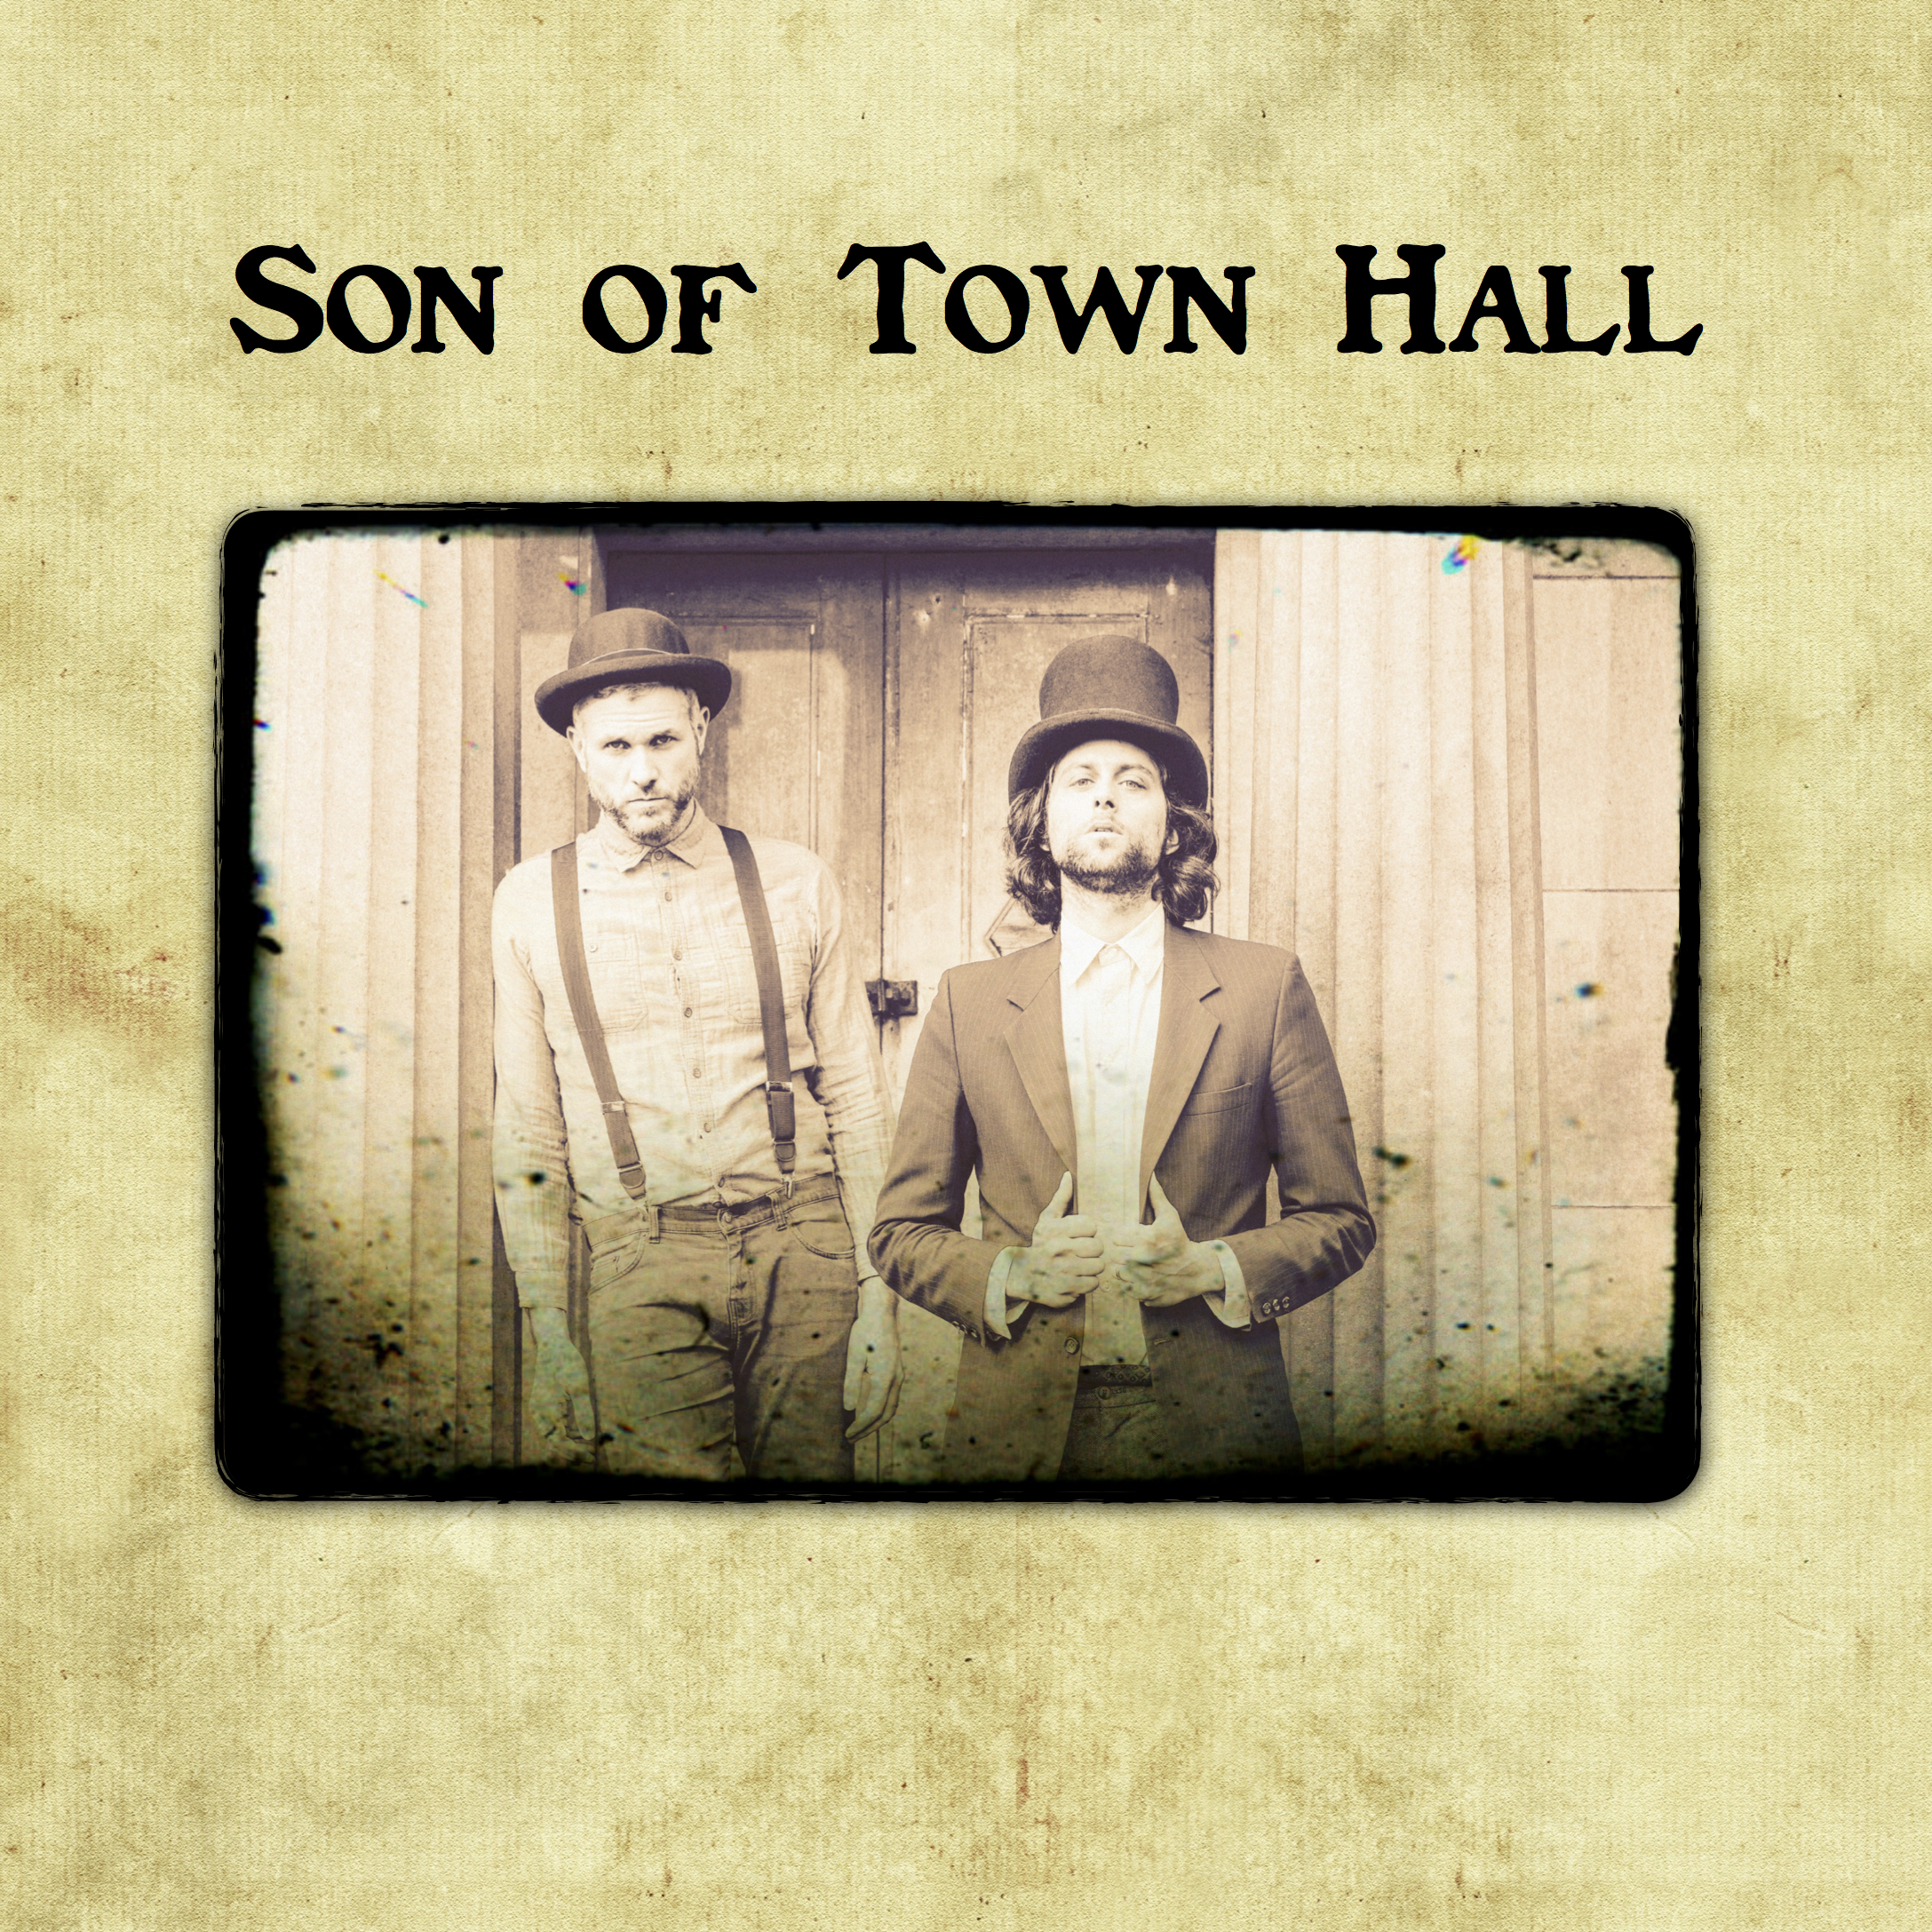 Son of Town Hall - 45  (click image or here to purchase )  Recorded by Jono Manson in Chupadero, NM Written aboard a raft at sea. Released July 2016